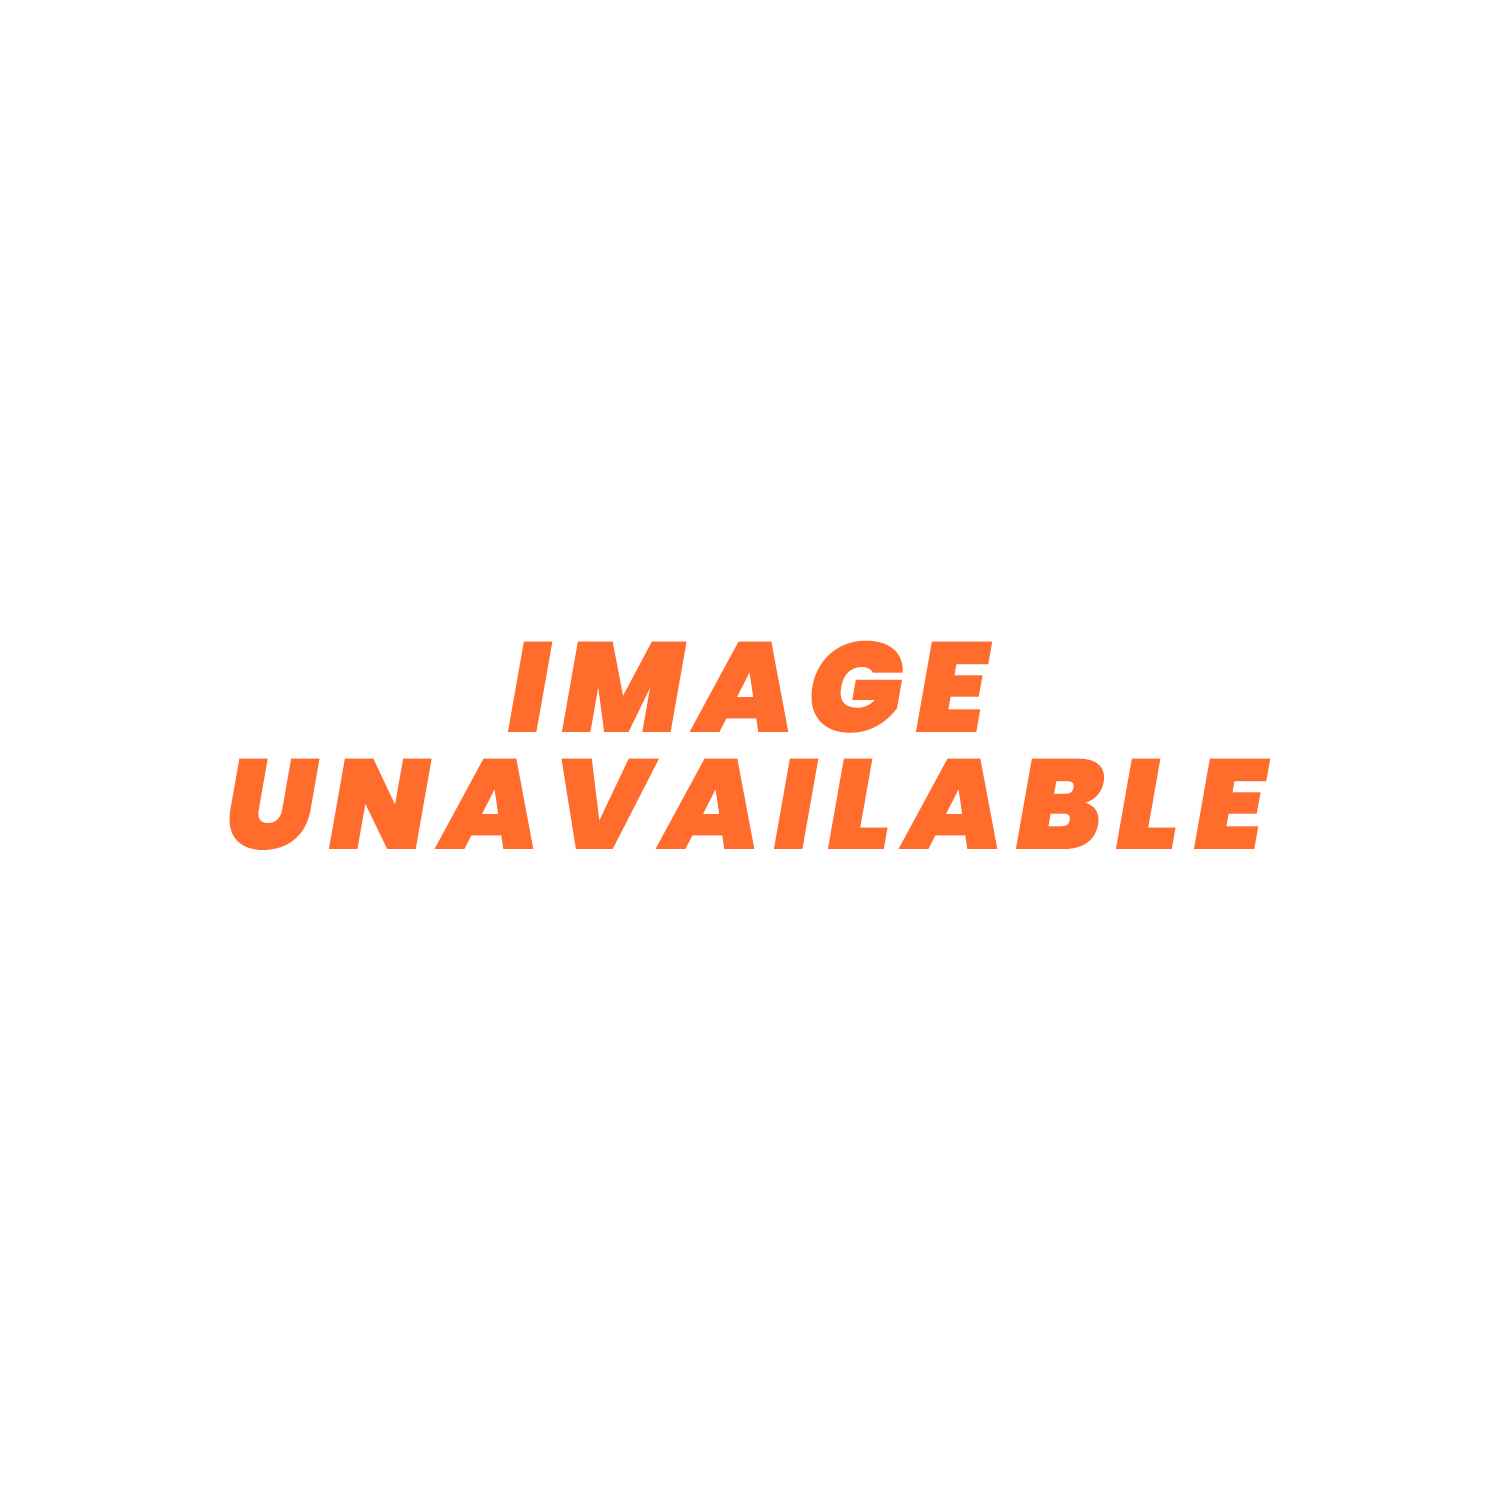 BC60 Battery Charger 115/230v to 12v 2a - 1753925